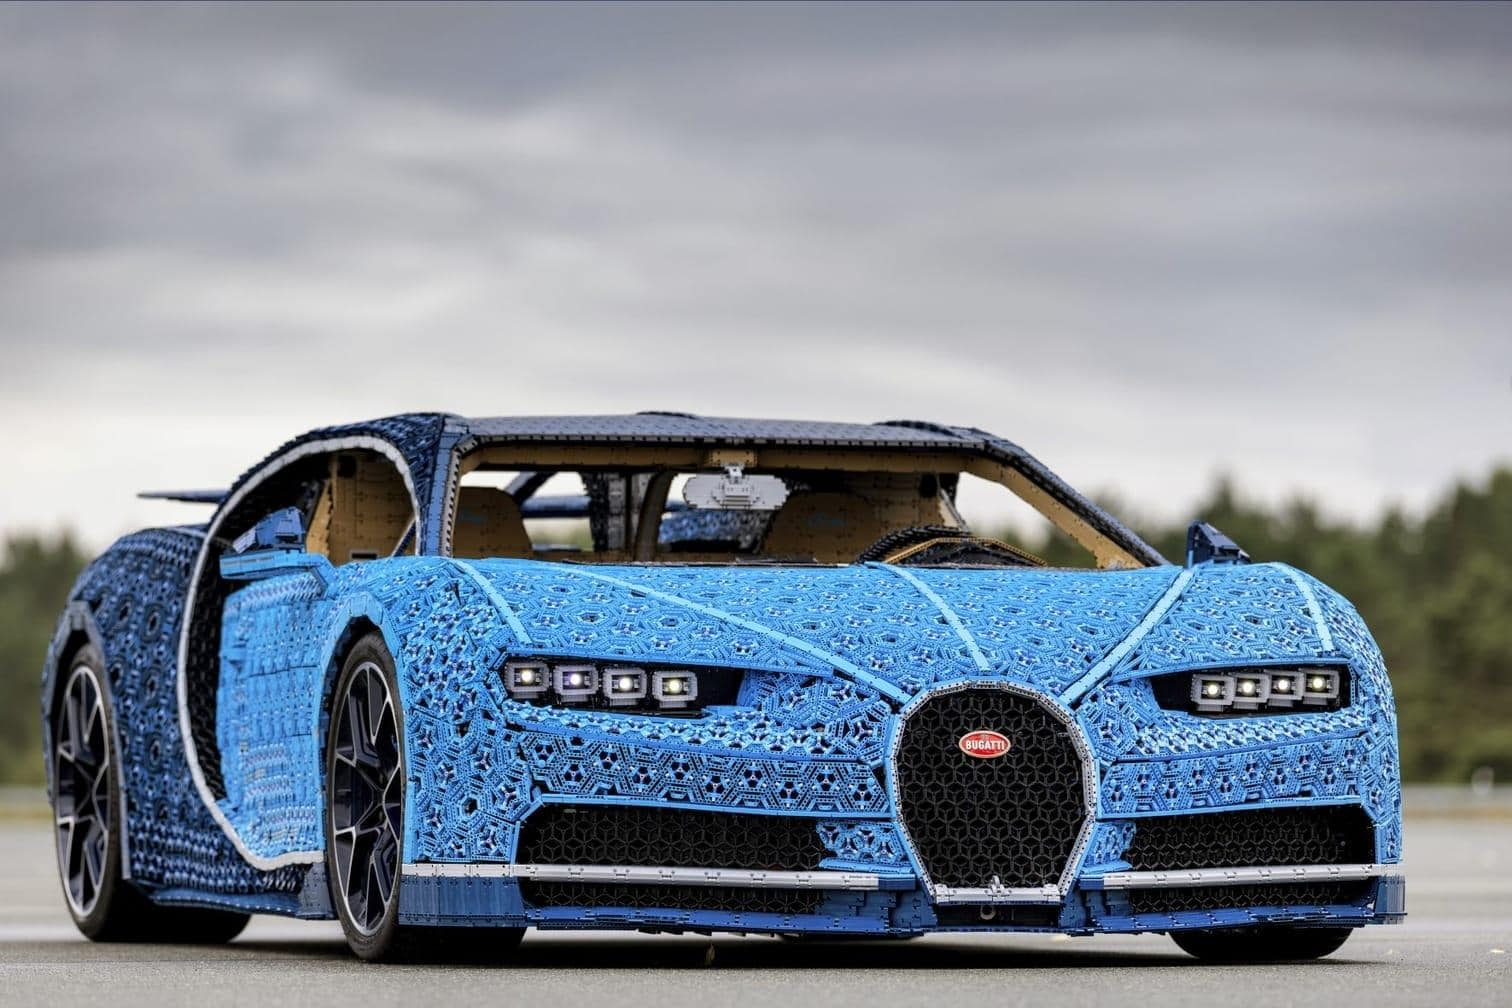 <p>Der Spielwarenhersteller Lego hat den Supersportwagen&nbsp;Bugatti Chiron in Originalgröße nachgebaut.</p> Foto: The LEGO Group